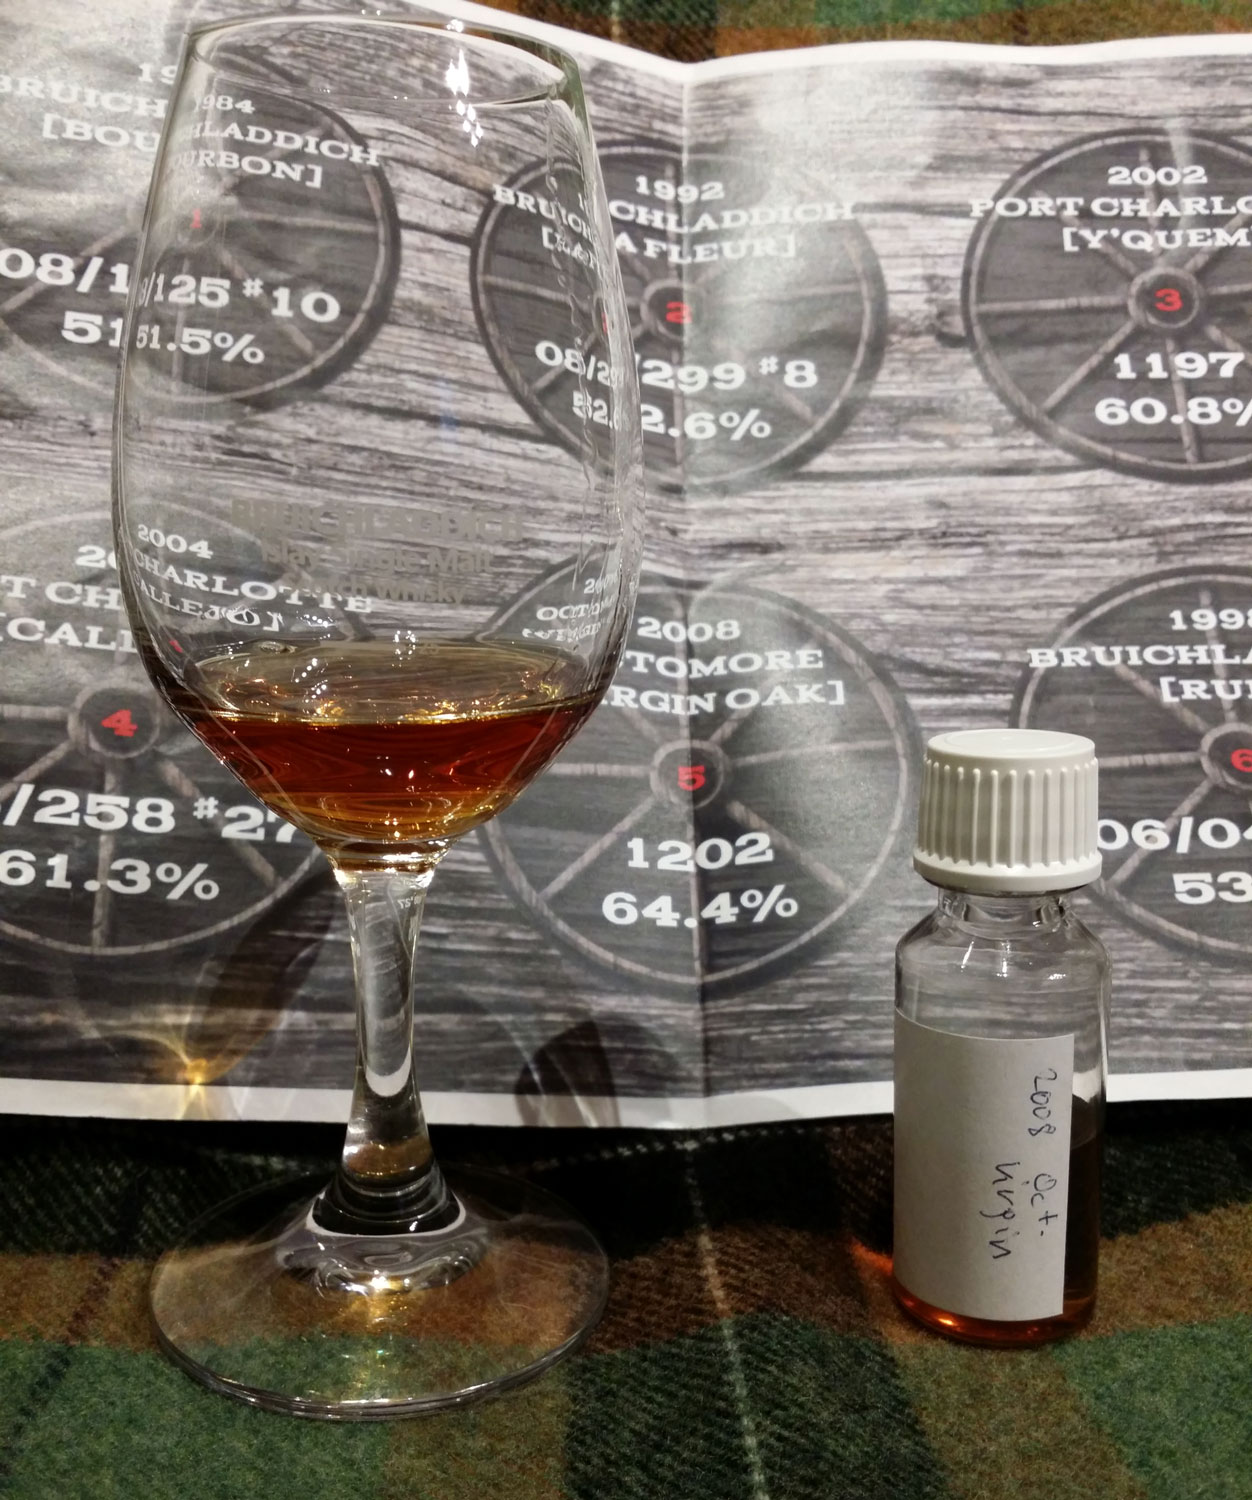 Octomore 2008 Virgin Oak cask sample